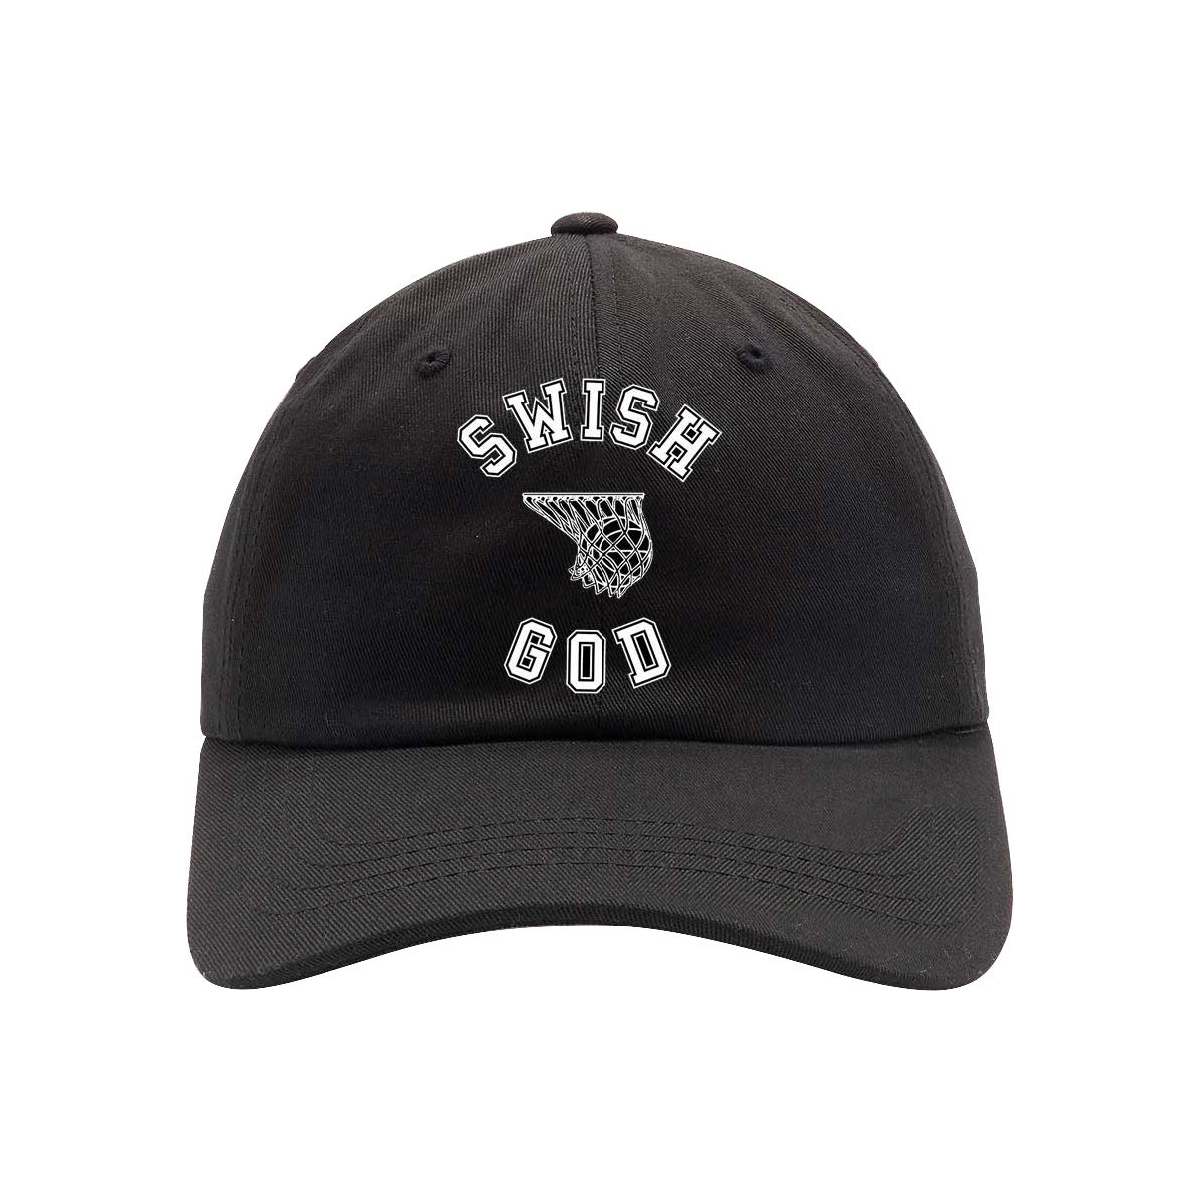 Katy Perry Tour Swish God Black Dad Hat